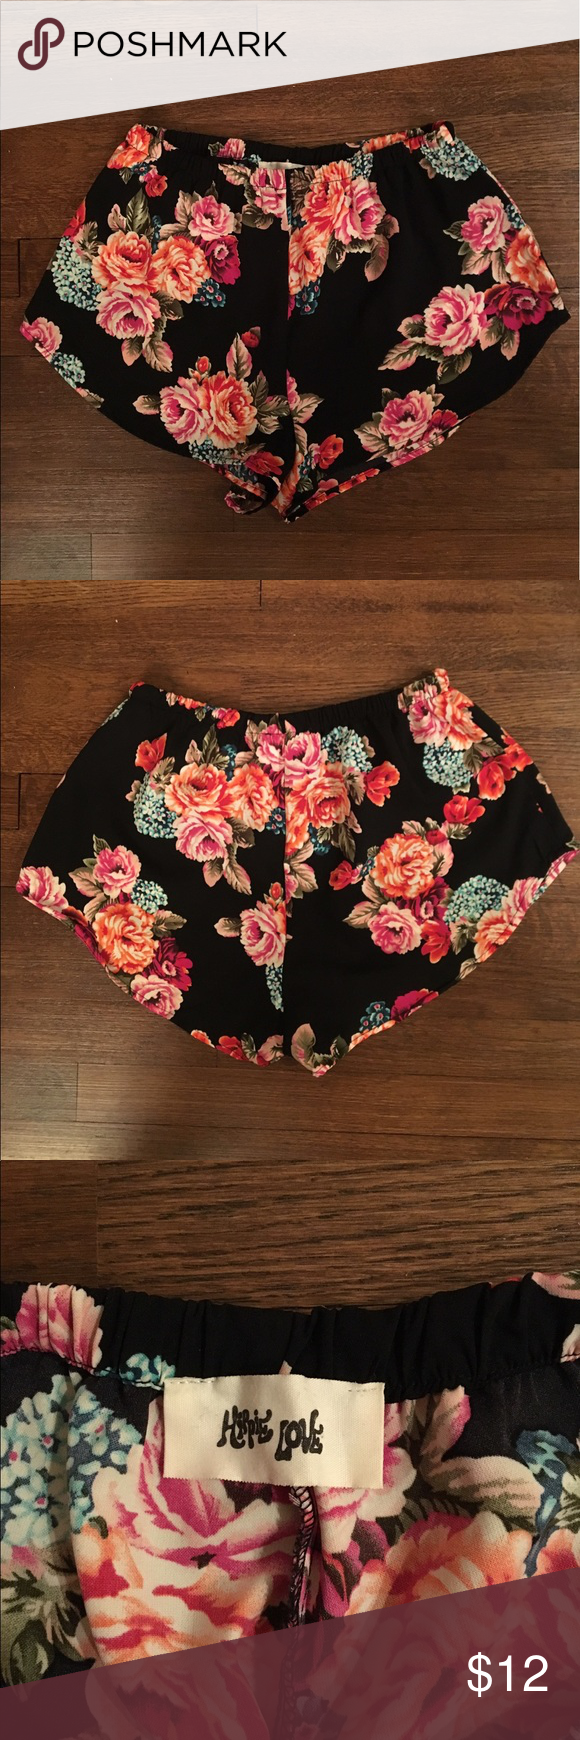 Silky High Waisted Black Printed Shorts Size M From Vanilla Sky boutique in NY.  High Waisted Black printed shorts. Pairs perfectly with a crop top and great for going out or hanging out. Vanilla Sky Shorts